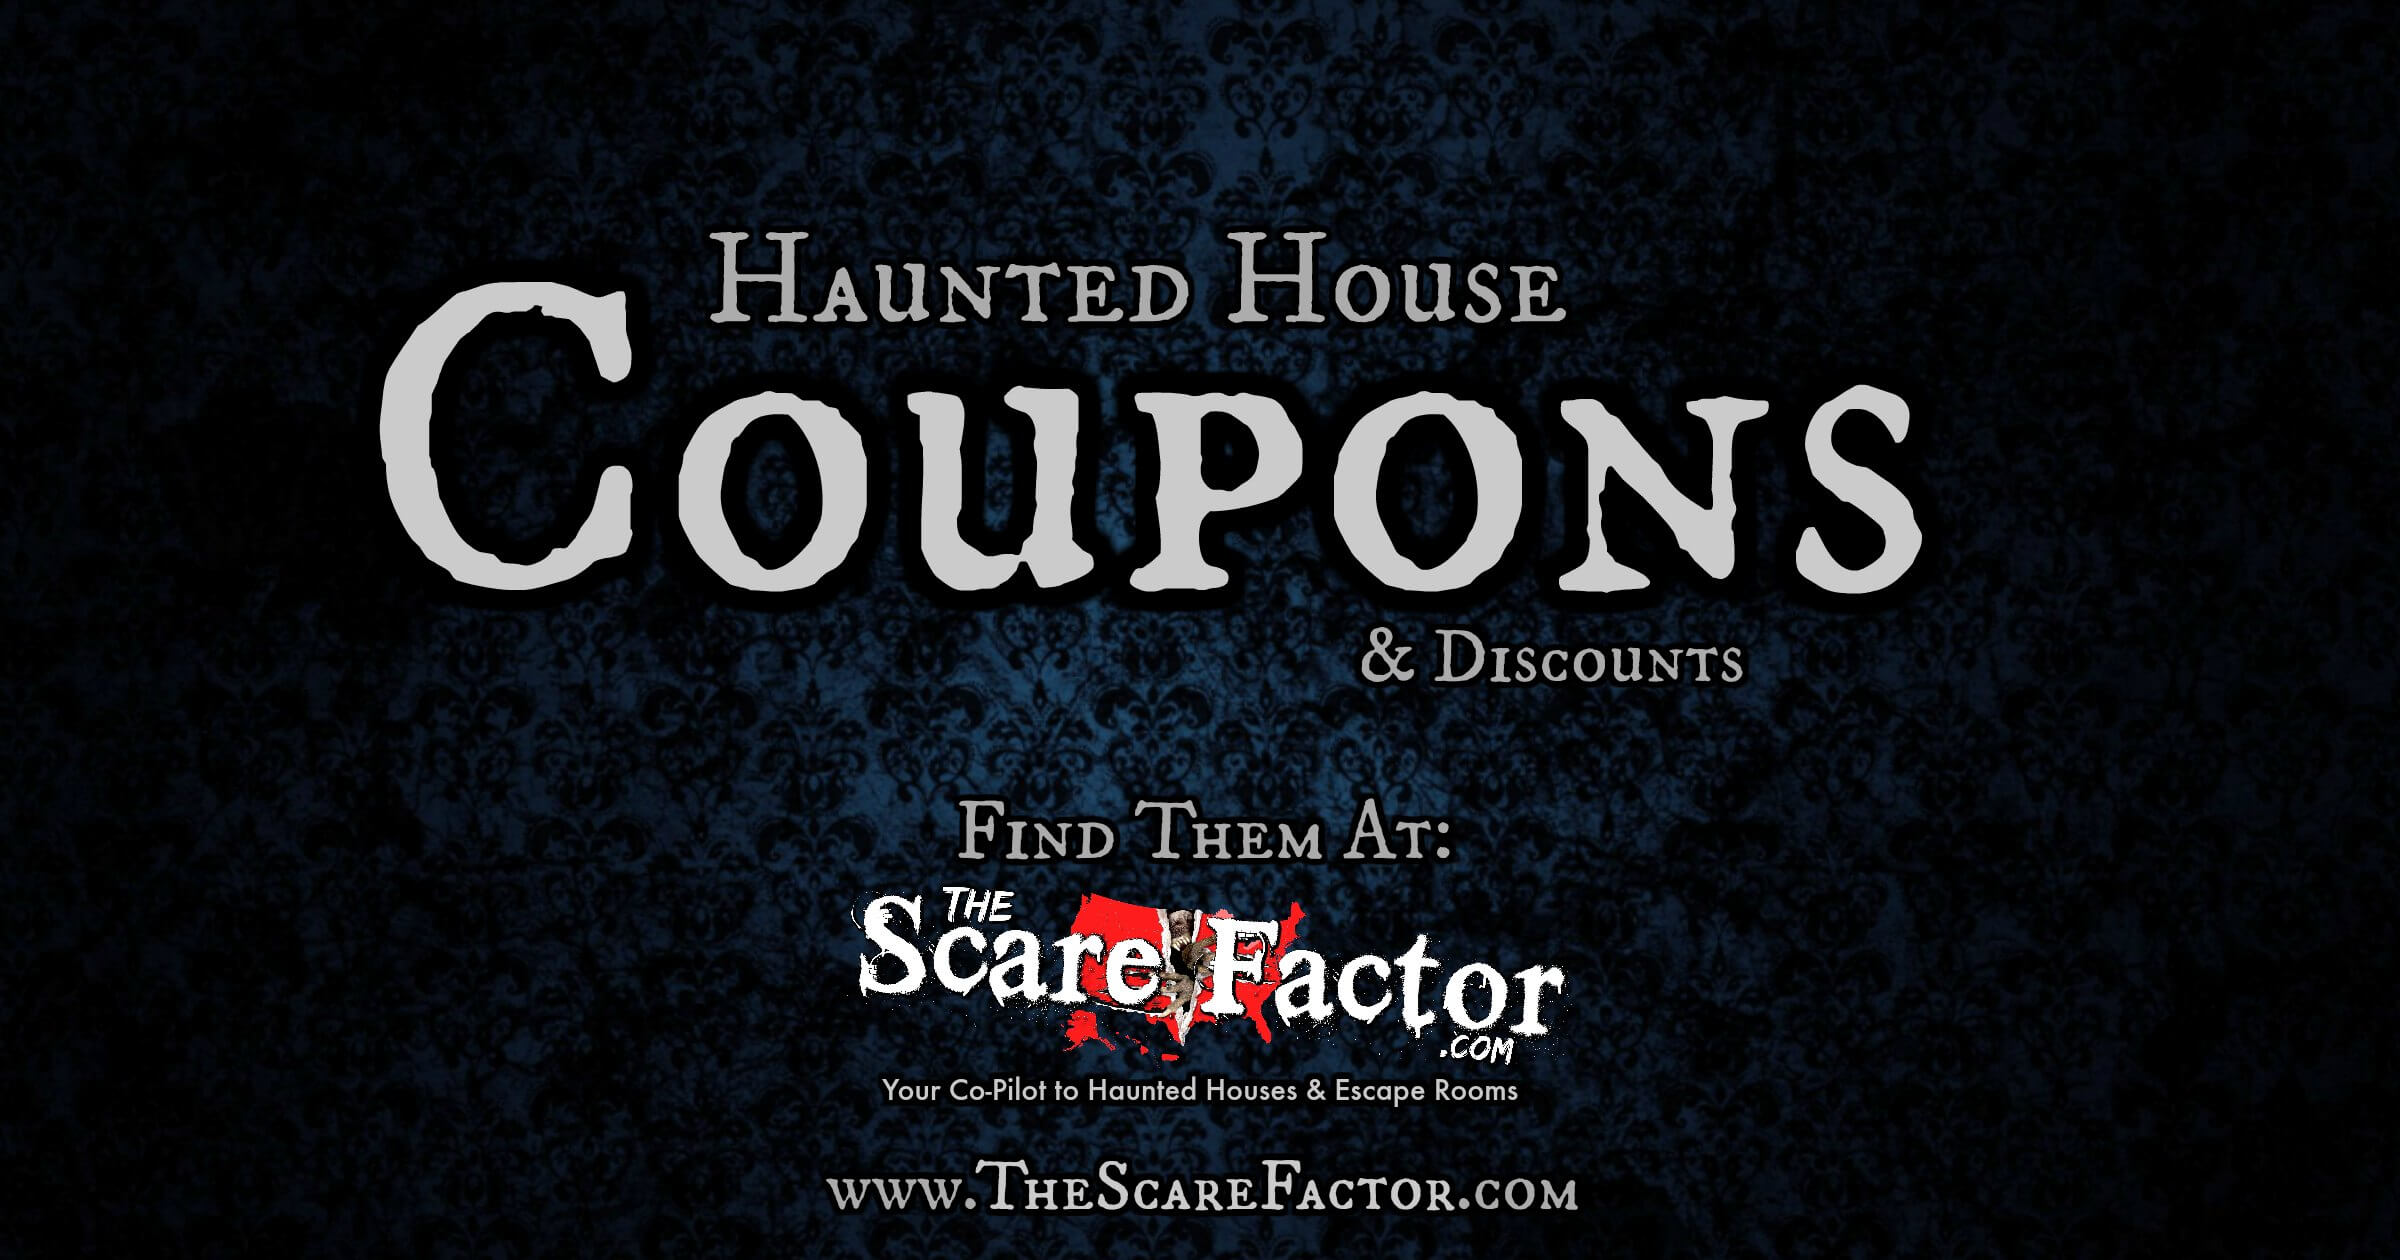 The house coupon codes